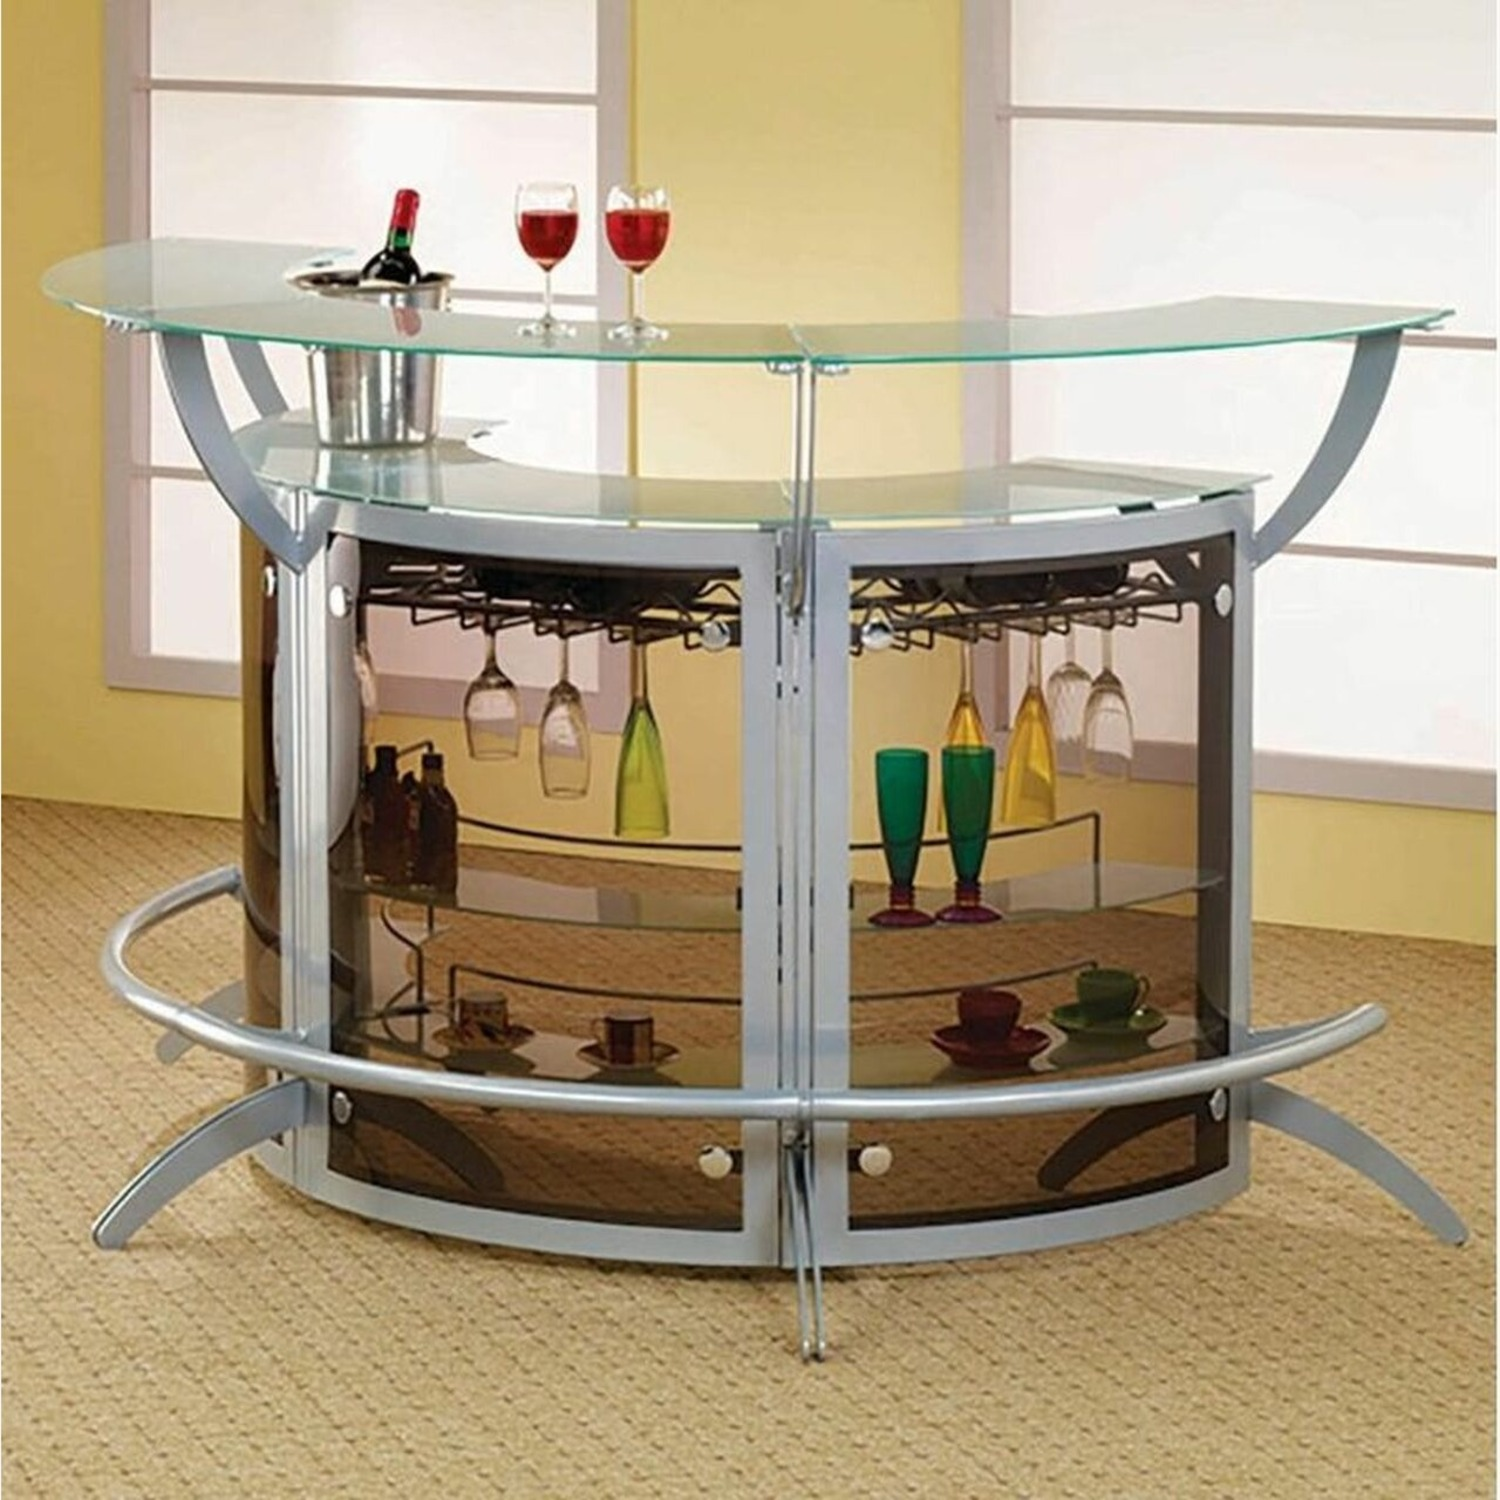 3-Piece Bar Unit Set In Smoked Acrylic & Silver - image-0